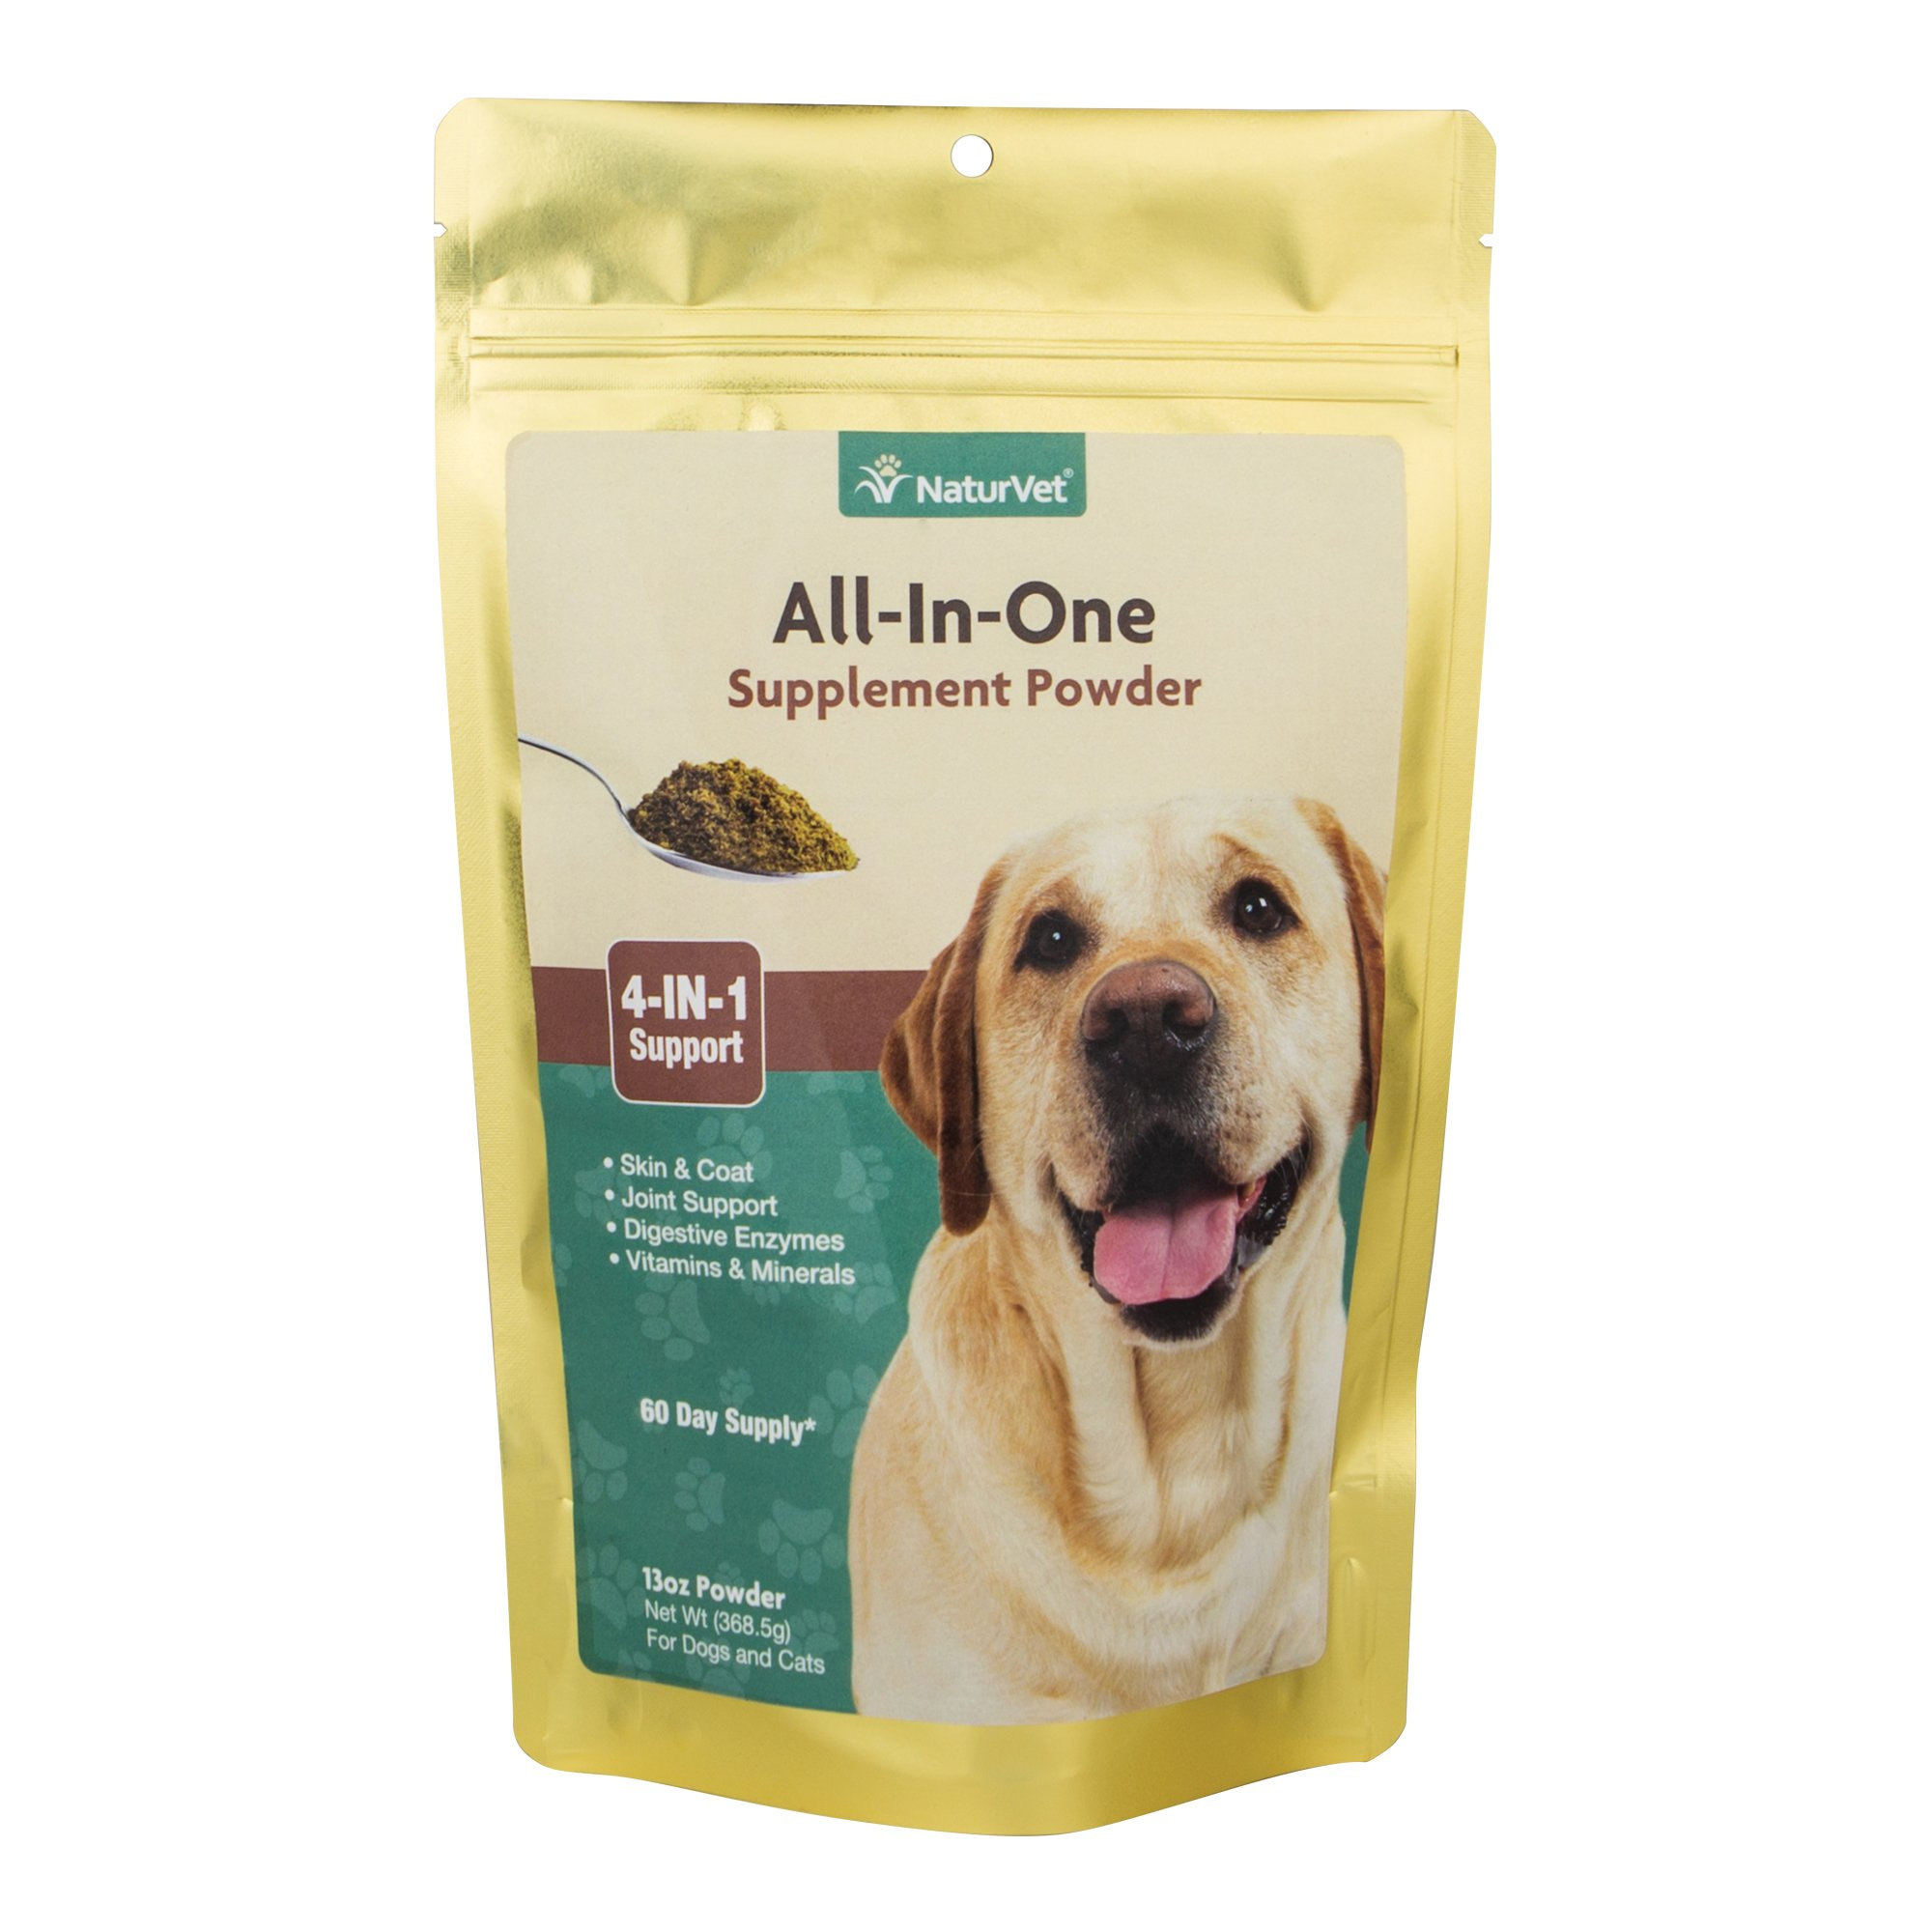 All-in-One Dog Powder Supplement, Skin & Coat Health, Joint Support, Digestive Health, Vitamin and Mineral Support, Overall Health Boost For Your Dog, Made by NaturVet